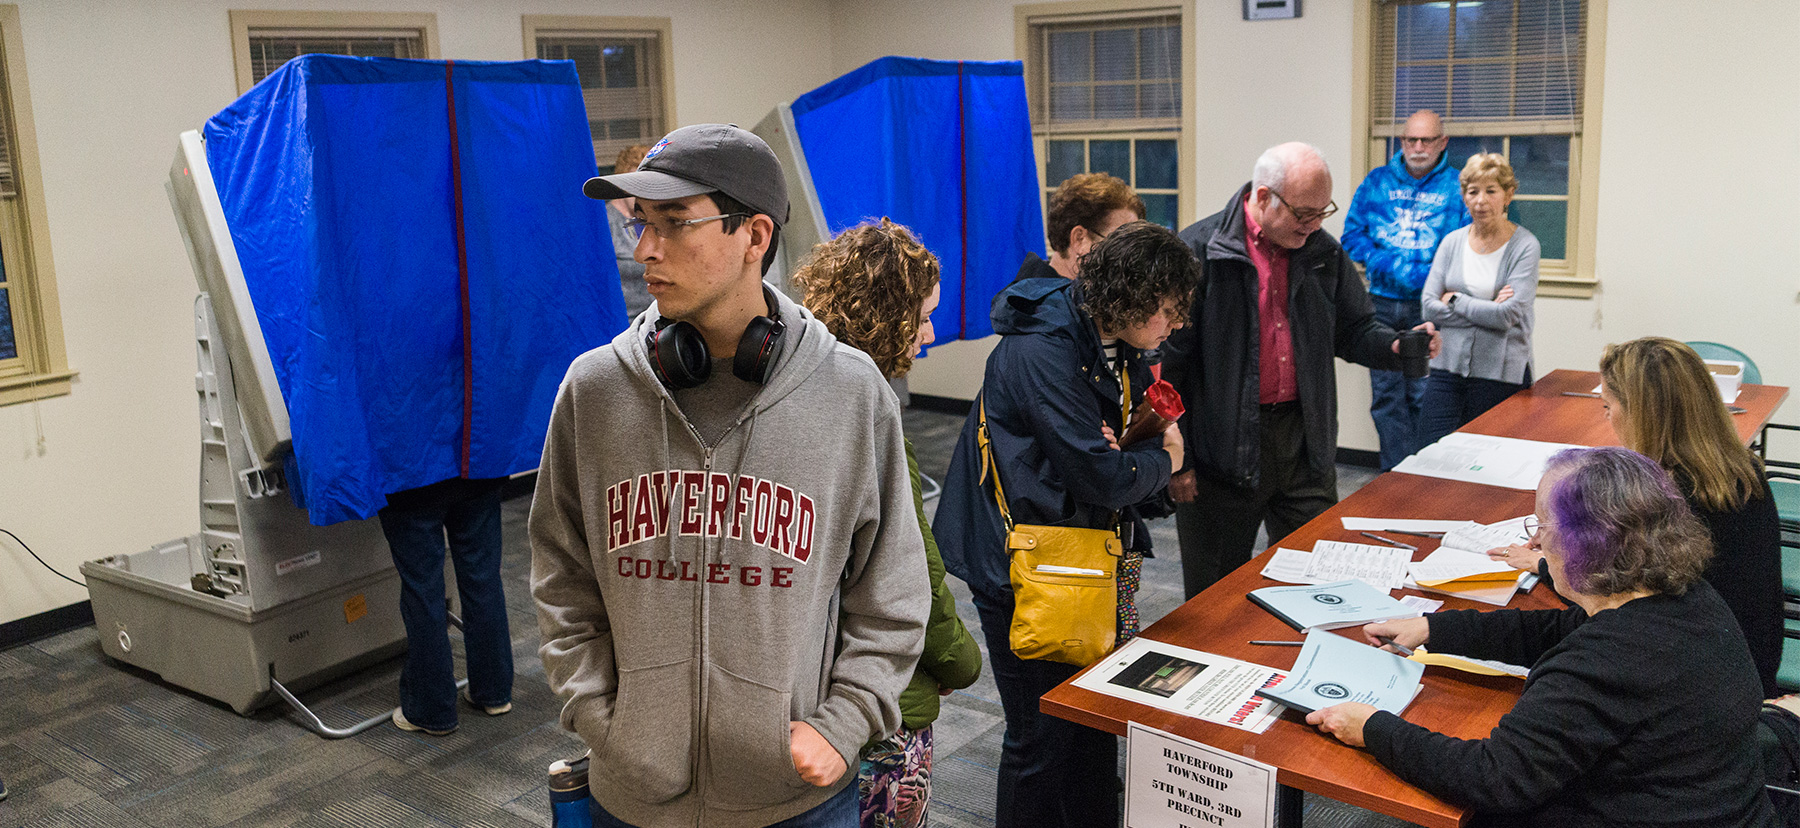 Haverford College Polling Location